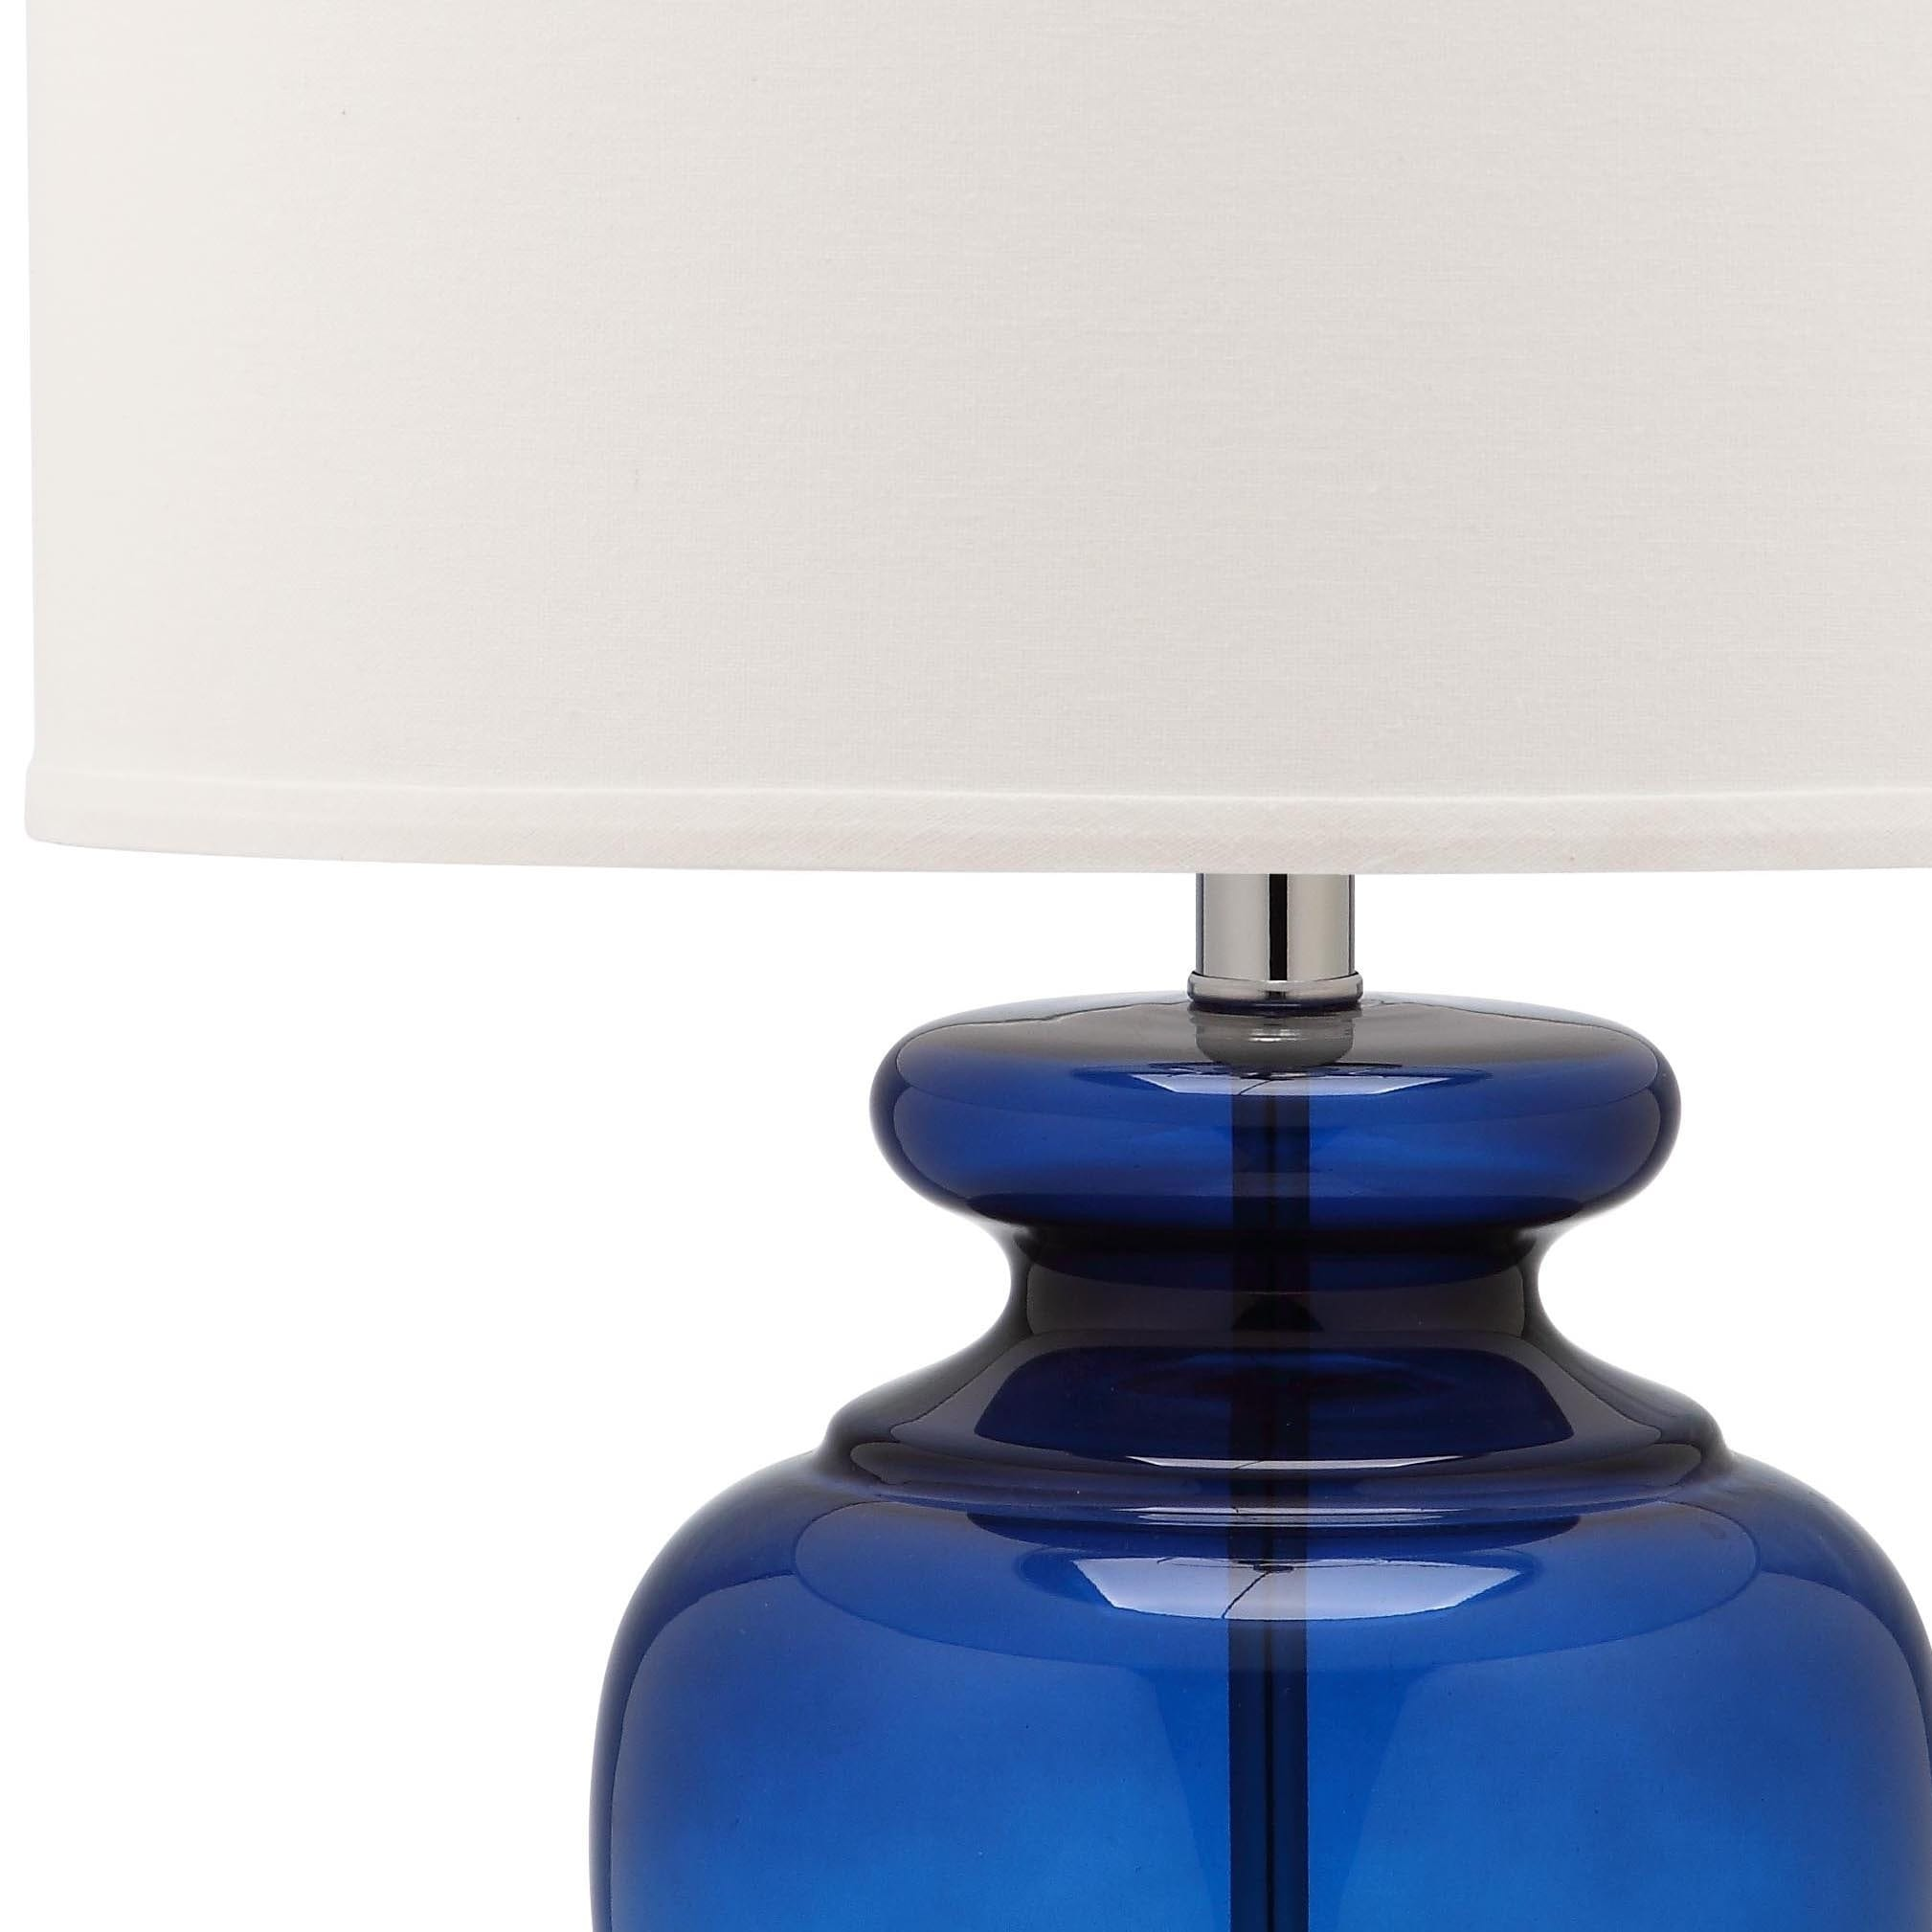 lamps lighting reviews birch sapphire pdp table lamp lane glass